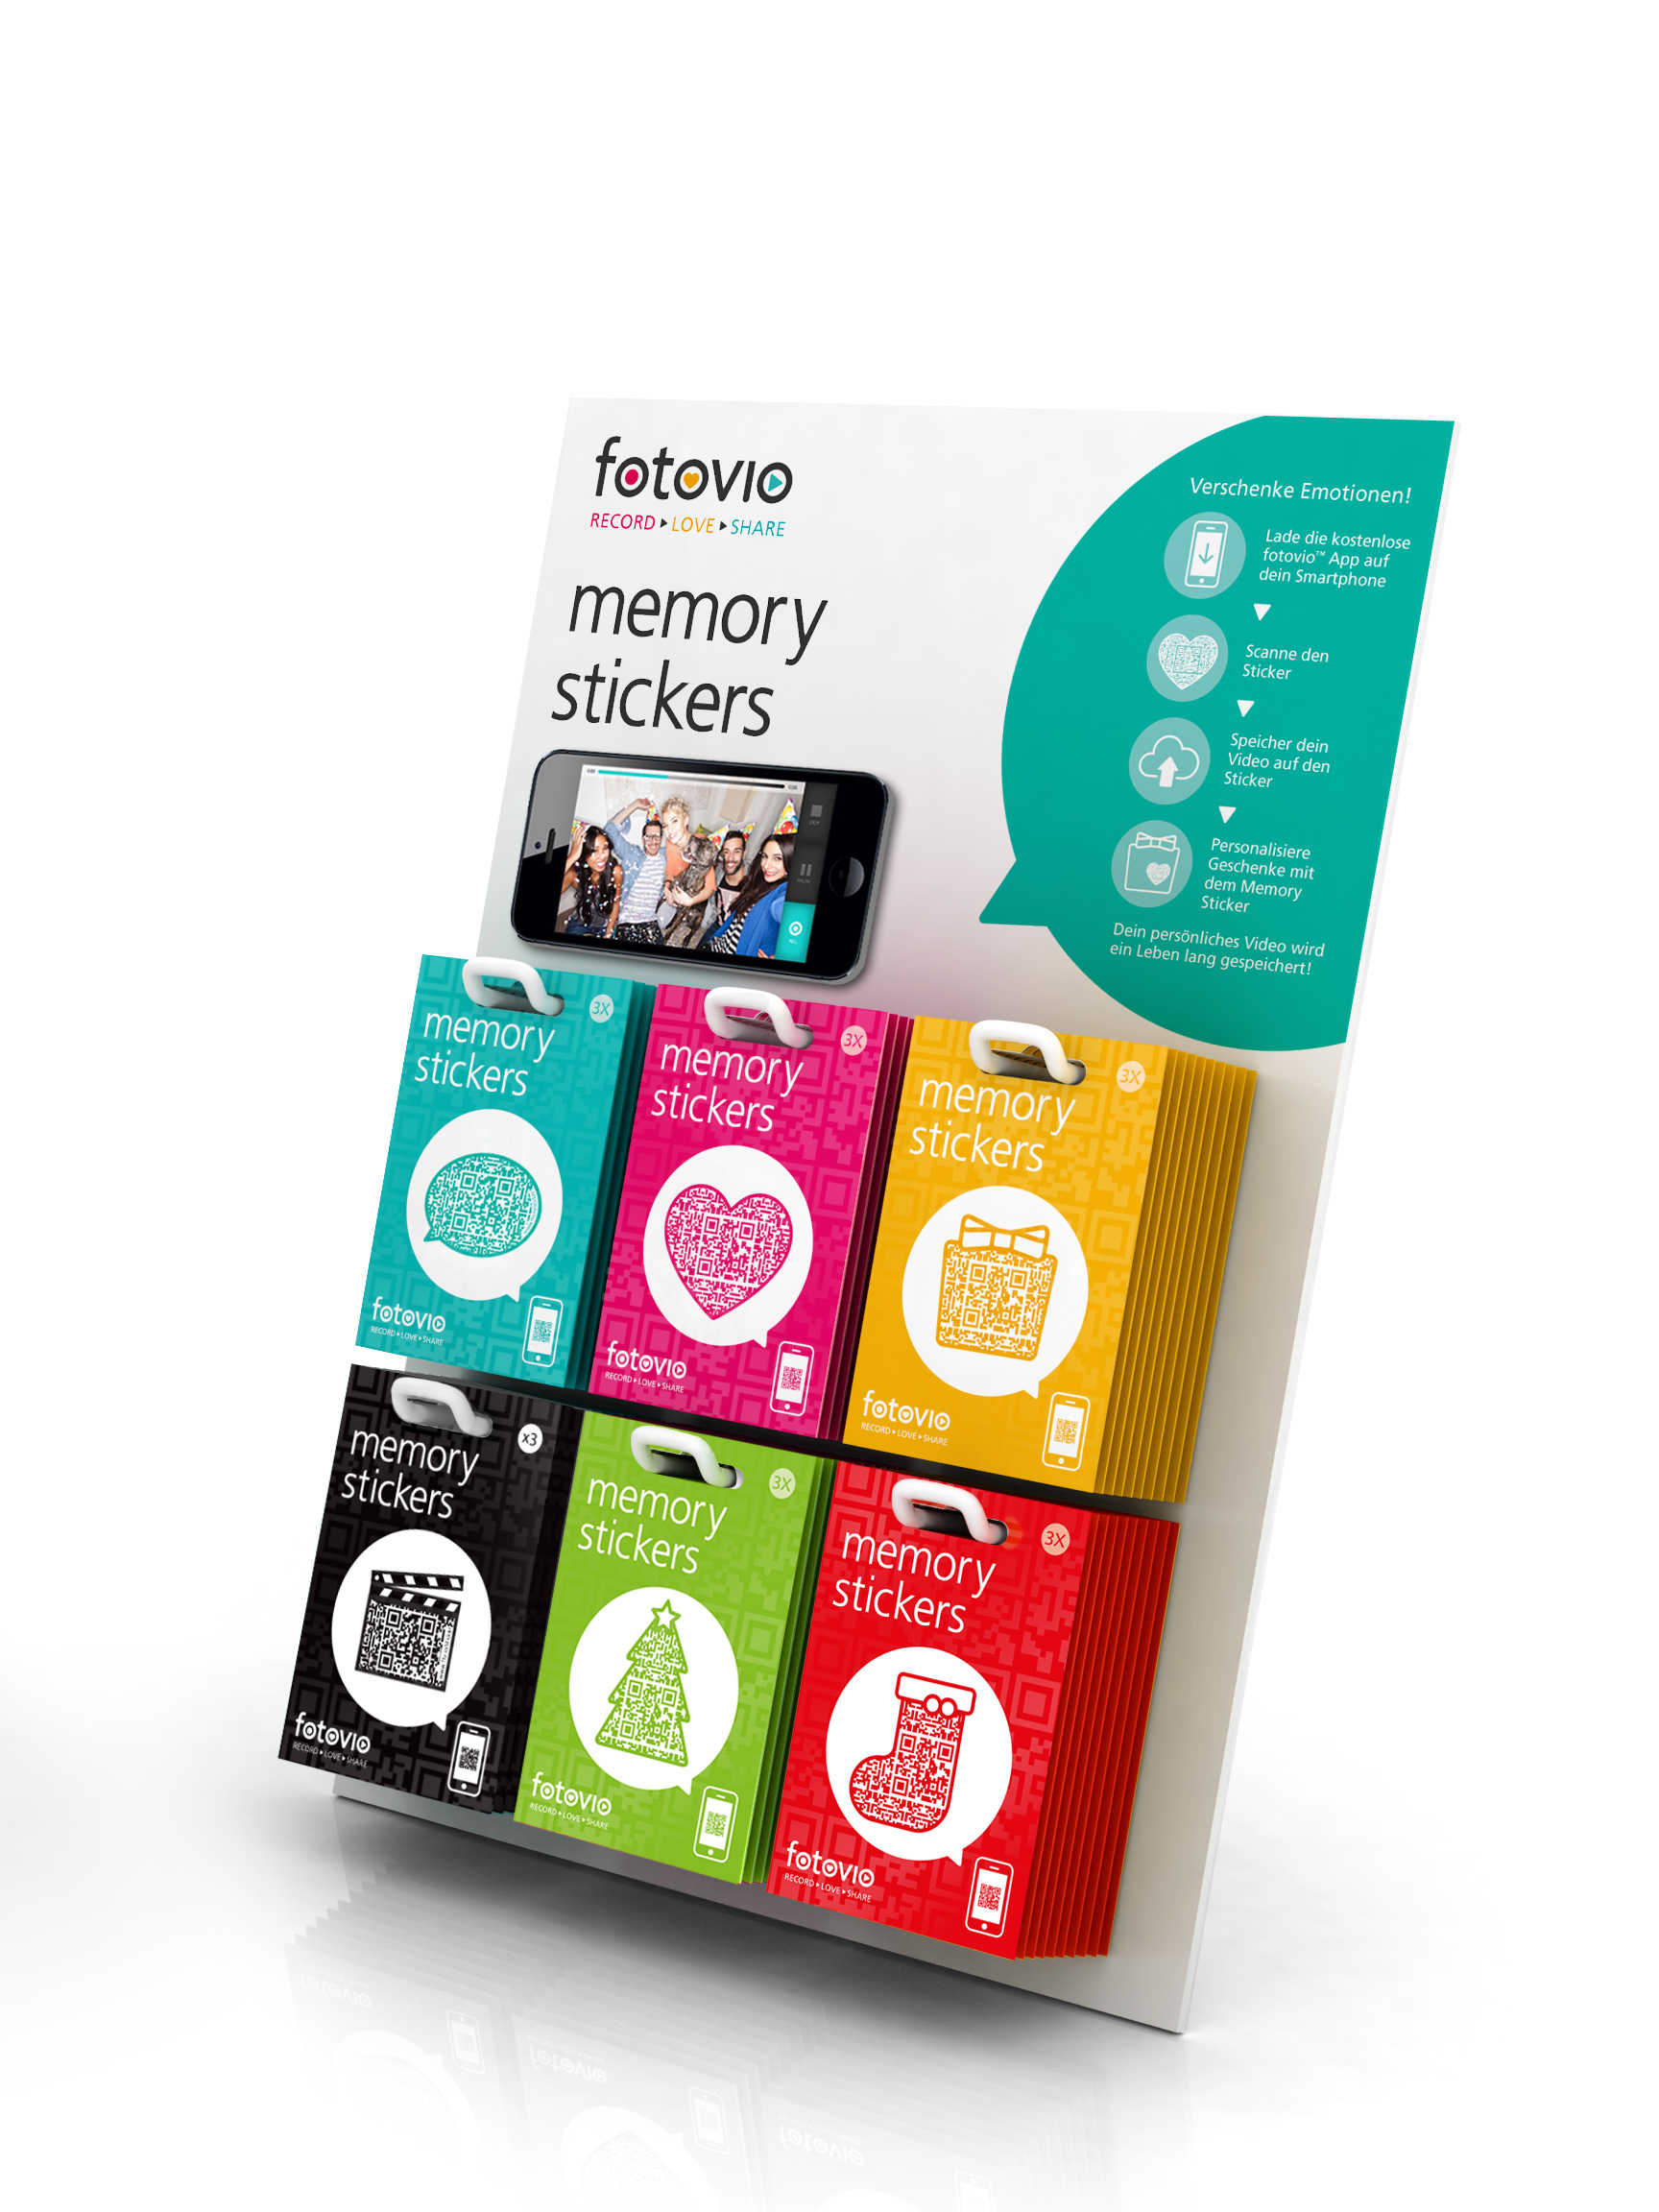 fotovio goes USA!